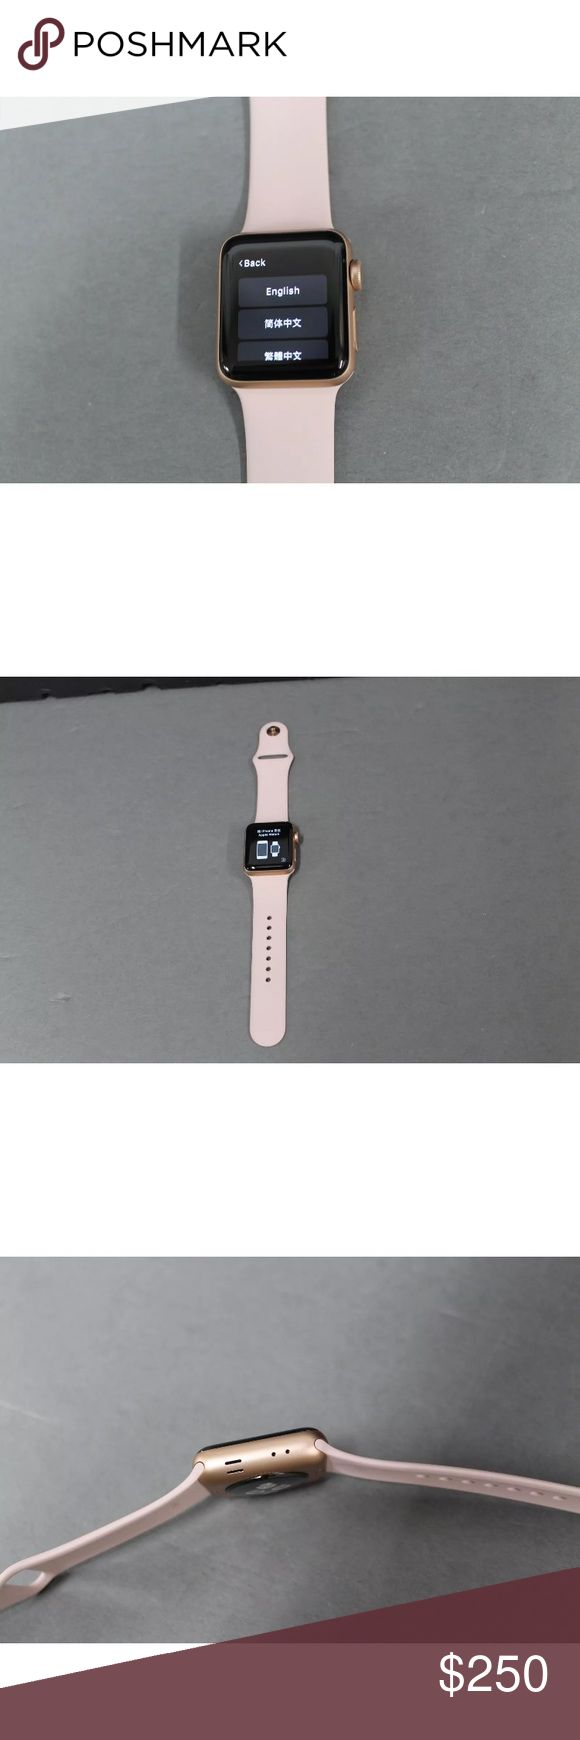 Apple Watch Series 3 Gold w/ Pink Band If you are interested in buying this item, contact me via telephone 201-310-9371. Also, keep in mind that we take payments through a optional third party application. apple Accessories Watches